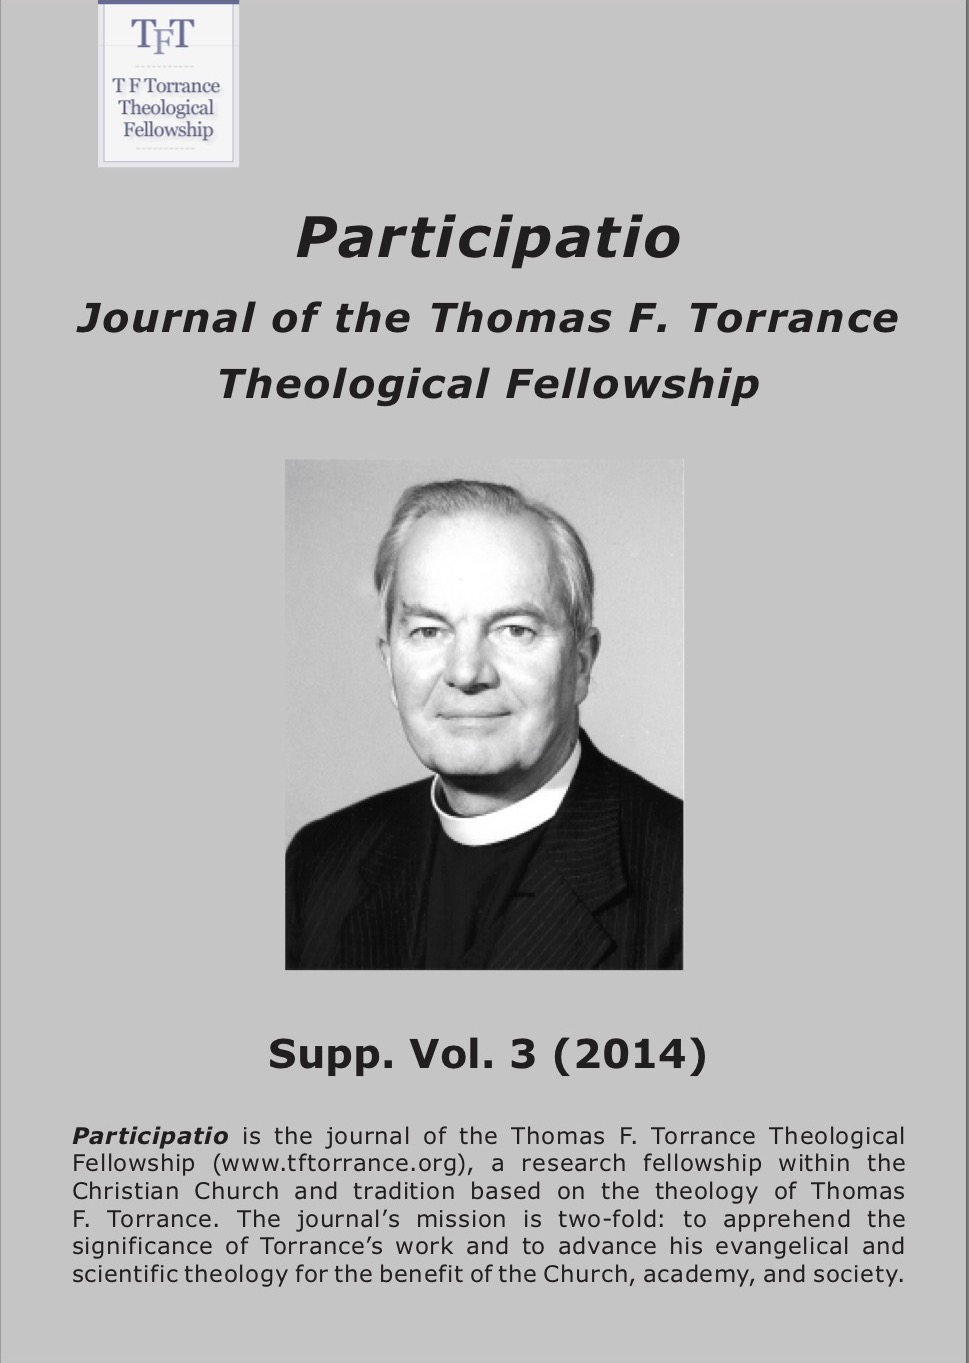 Participatio 2014, Supplement volume 3, cover page